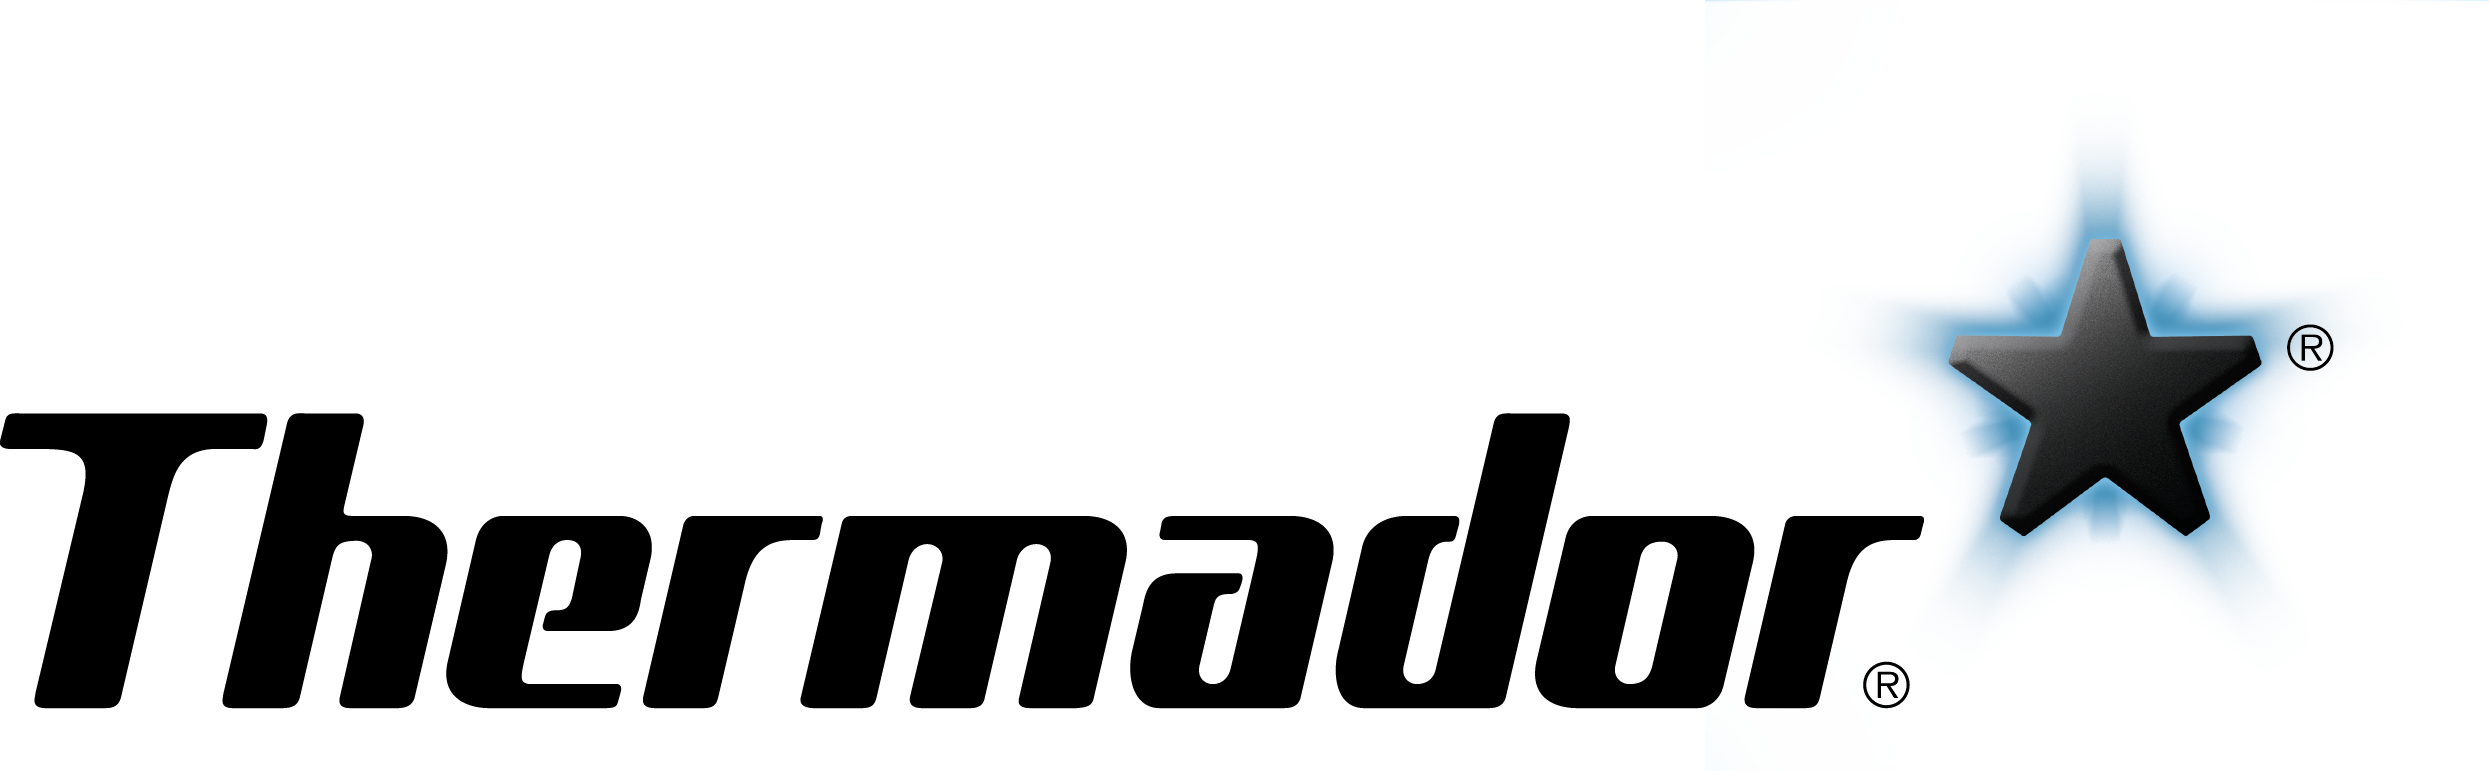 Thermador Fridge Service Near Me, Maytag Fridge Service